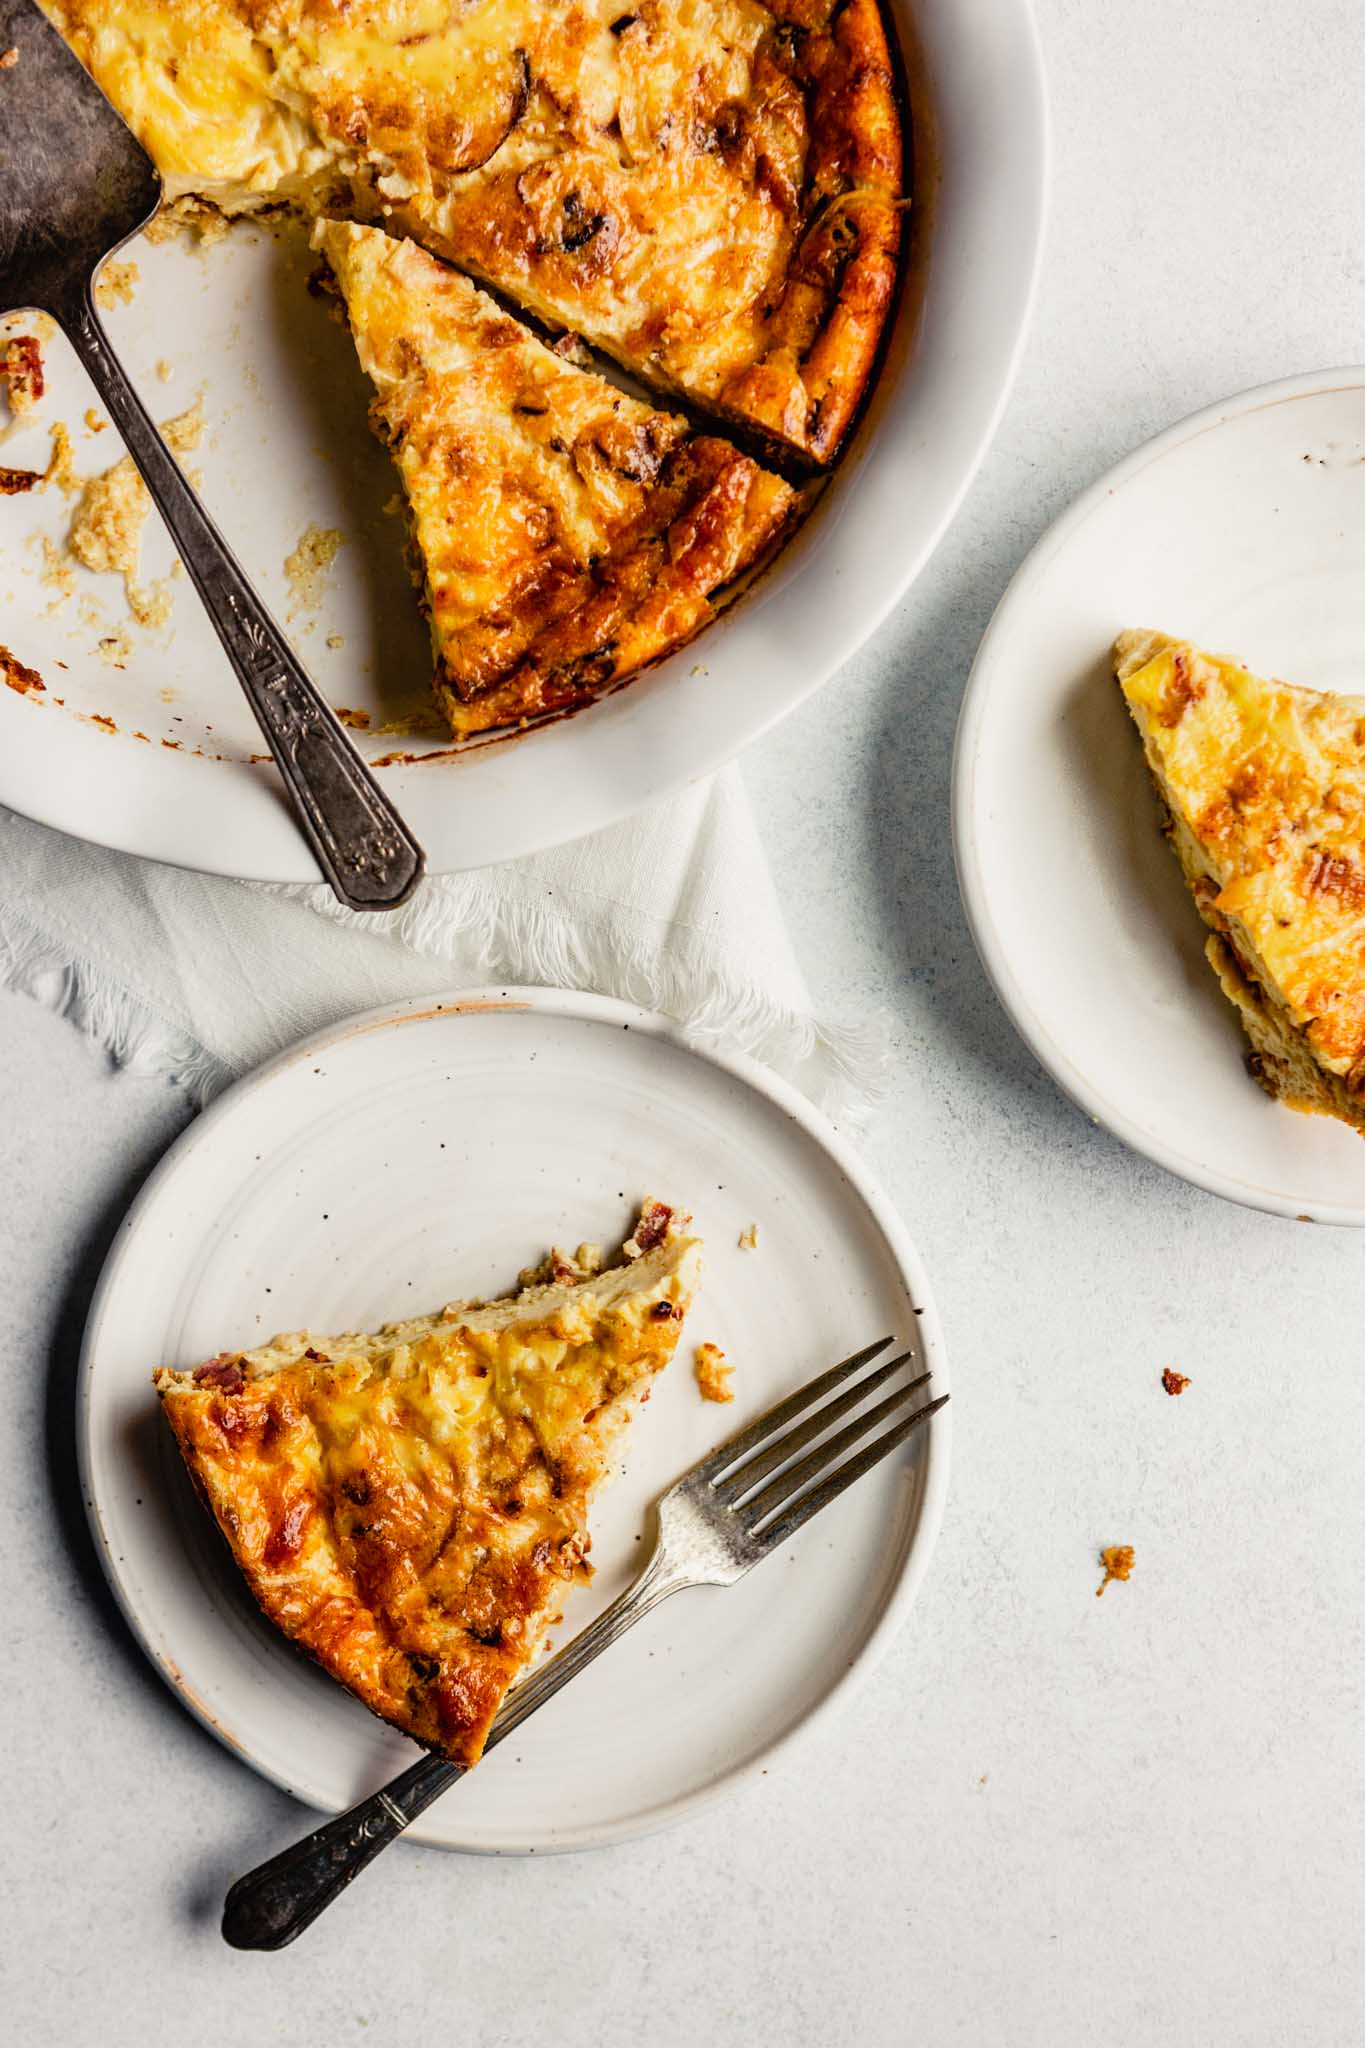 Overhead image of a crustless quiche in a white pie plate set on a white table with plates and pieces set around the quiche..